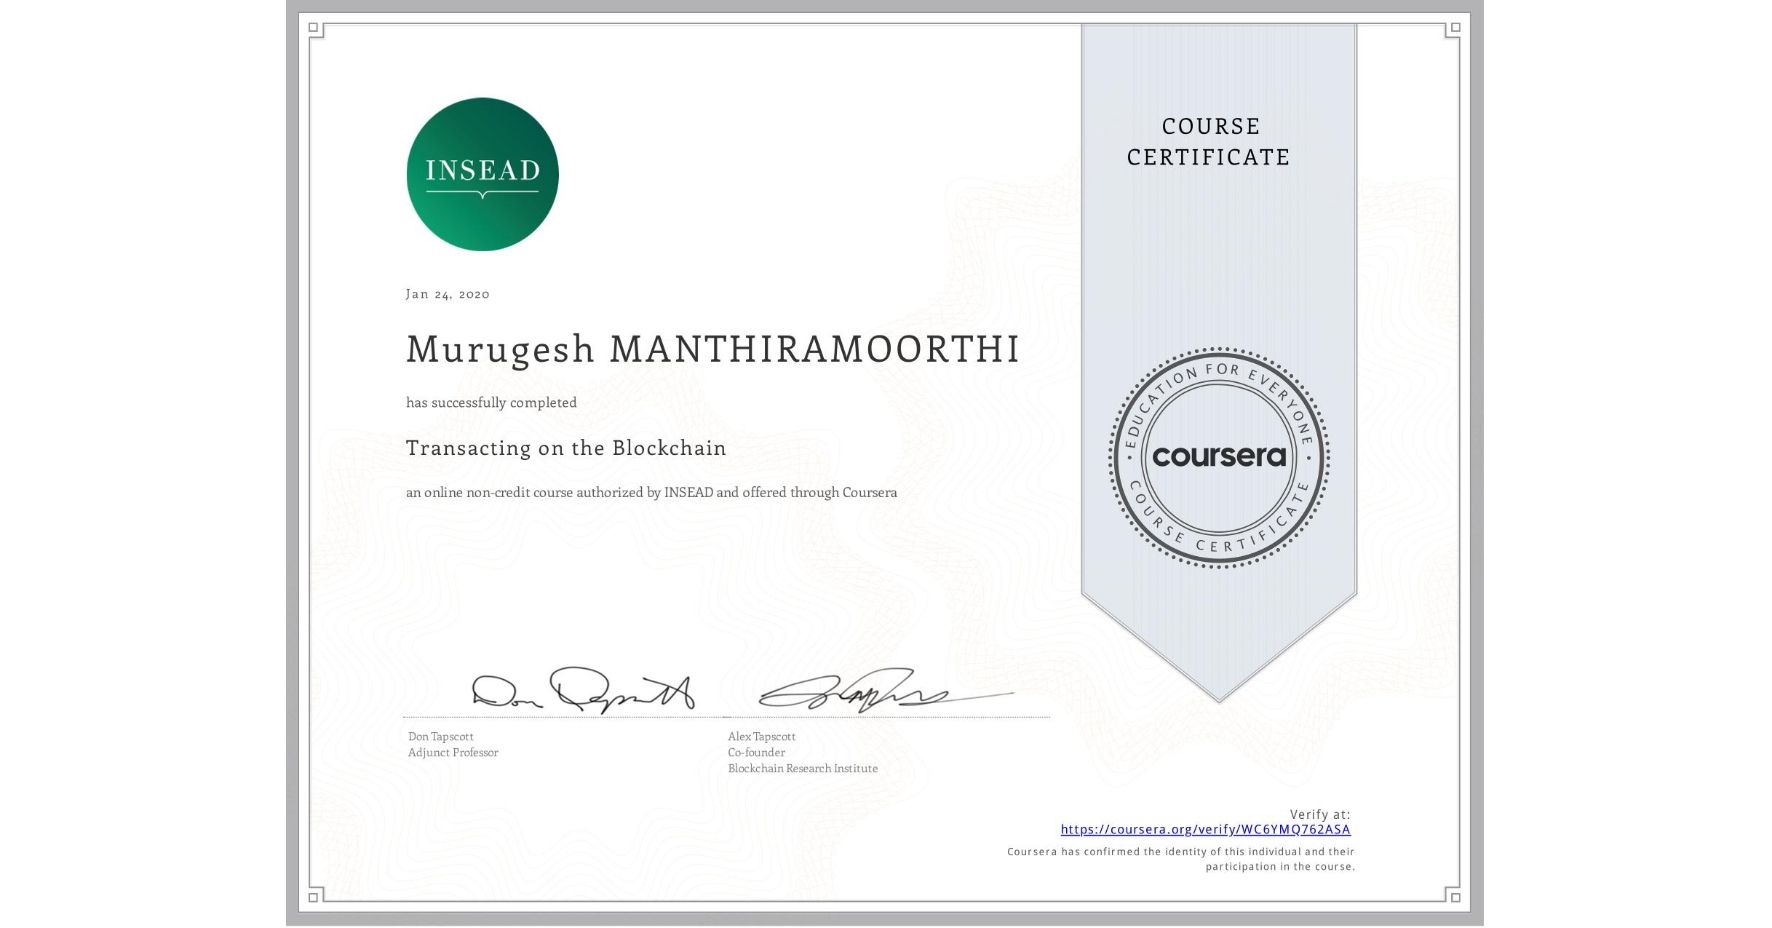 View certificate for Murugesh Manthiramoorthi, Transacting on the Blockchain, an online non-credit course authorized by INSEAD and offered through Coursera